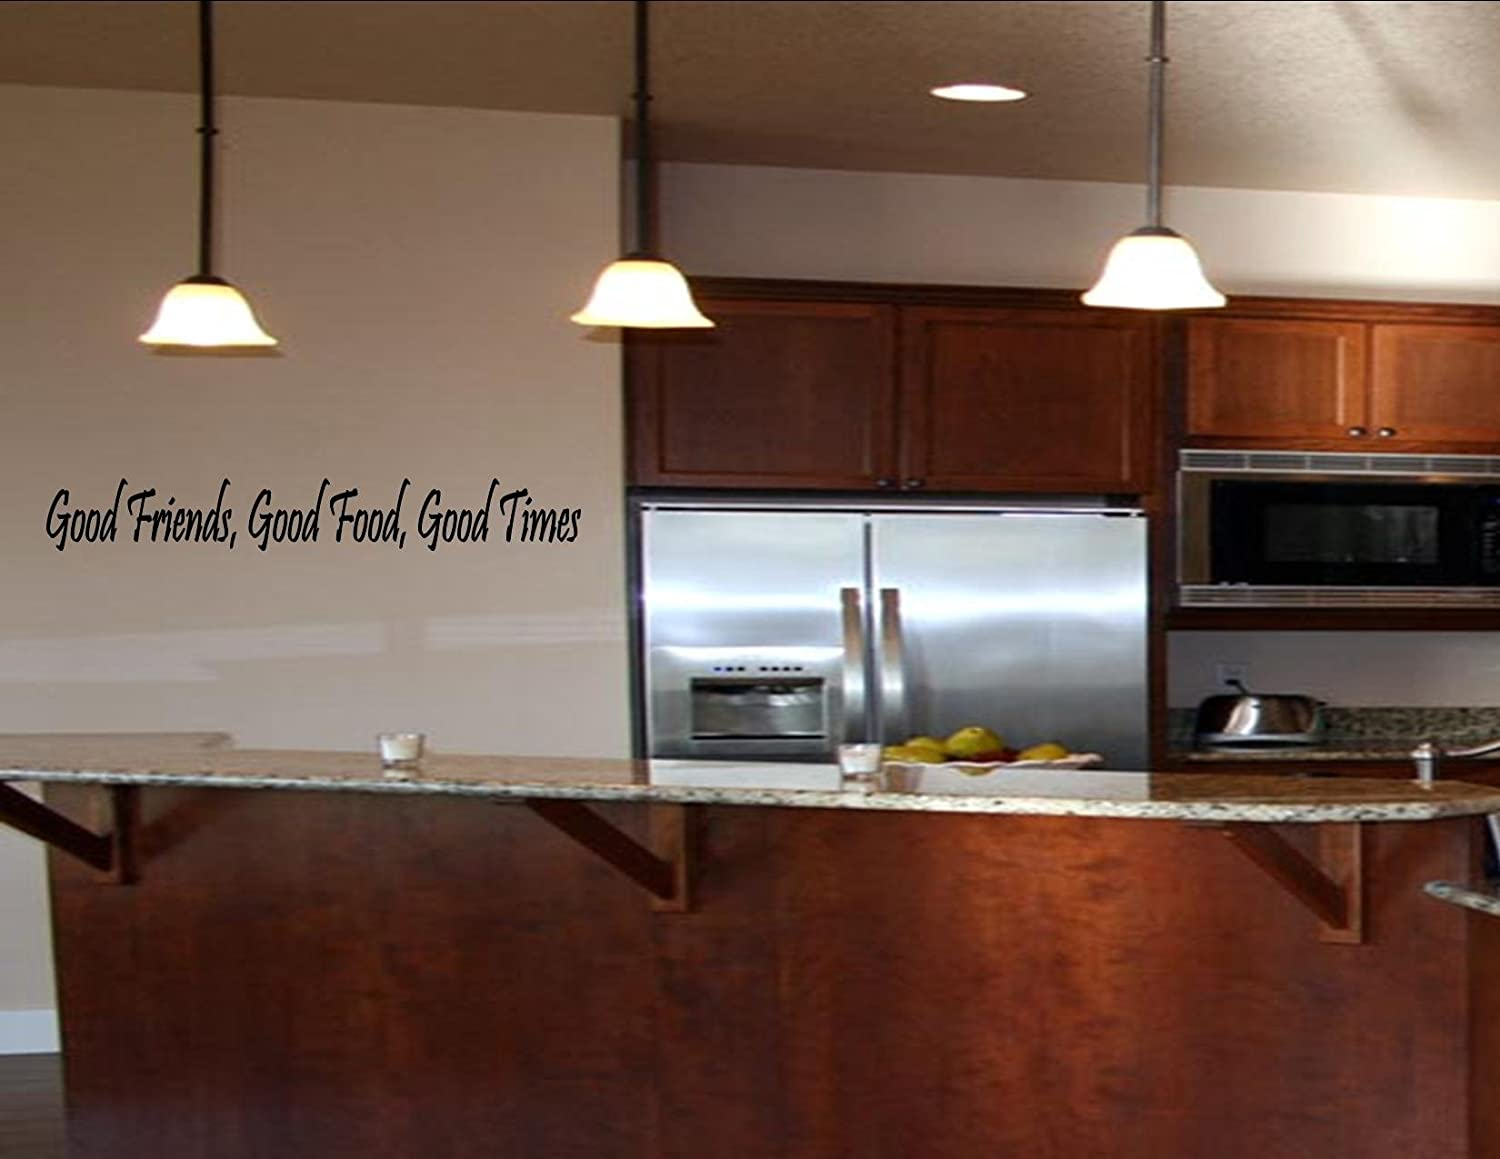 Amazon.com: GOOD FRIENDS, GOOD FOOD, GOOD TIMES Vinyl Wall Quotes And  Sayings Home Art De...: Home U0026 Kitchen